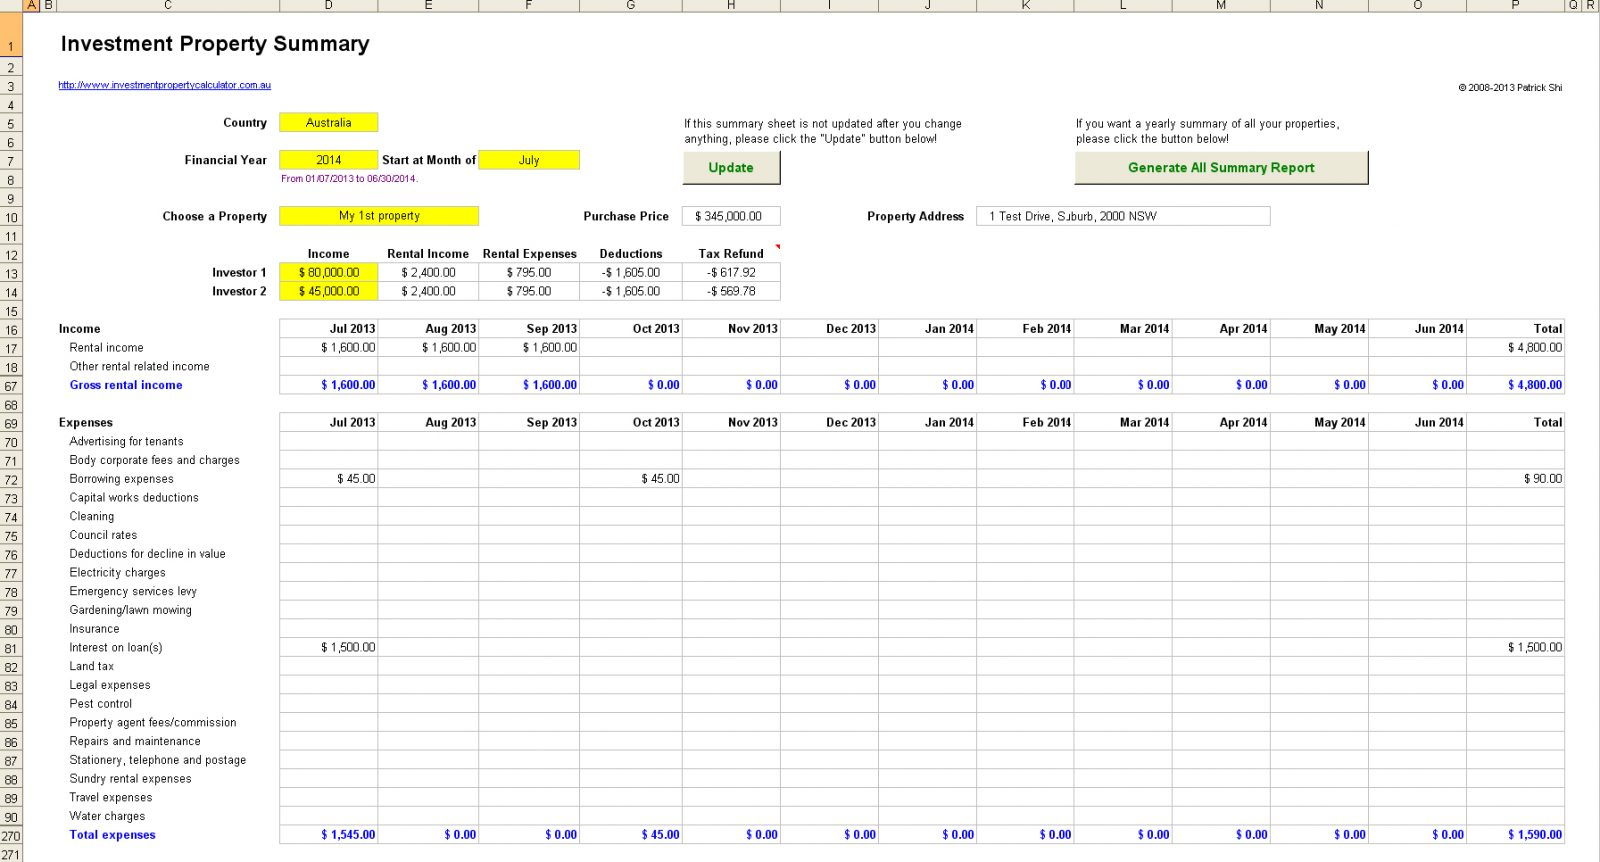 Real Estate Investment Spreadsheet Templates Free With Regard To Fresh Real Estateent Spreadsheet Photos Gxtd Org Cash Flow Roi